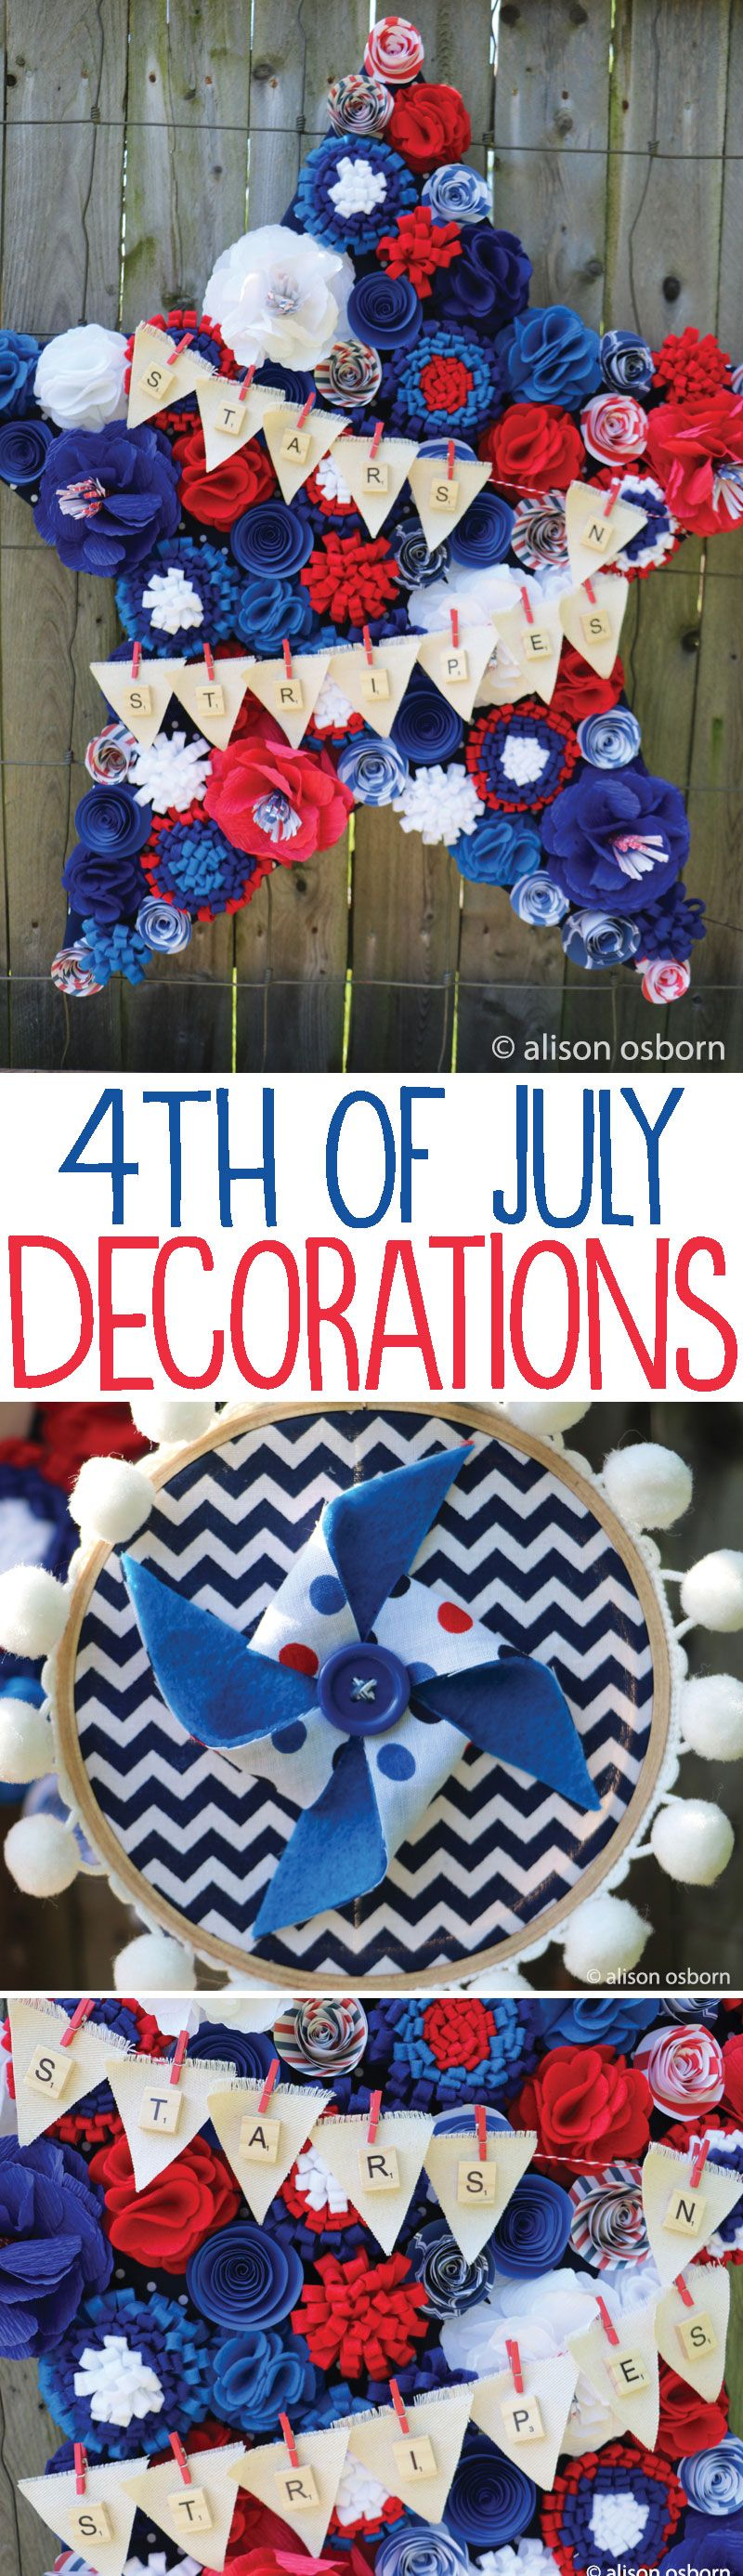 Diy 4th of july decorations on love the day for 4 of july decorations